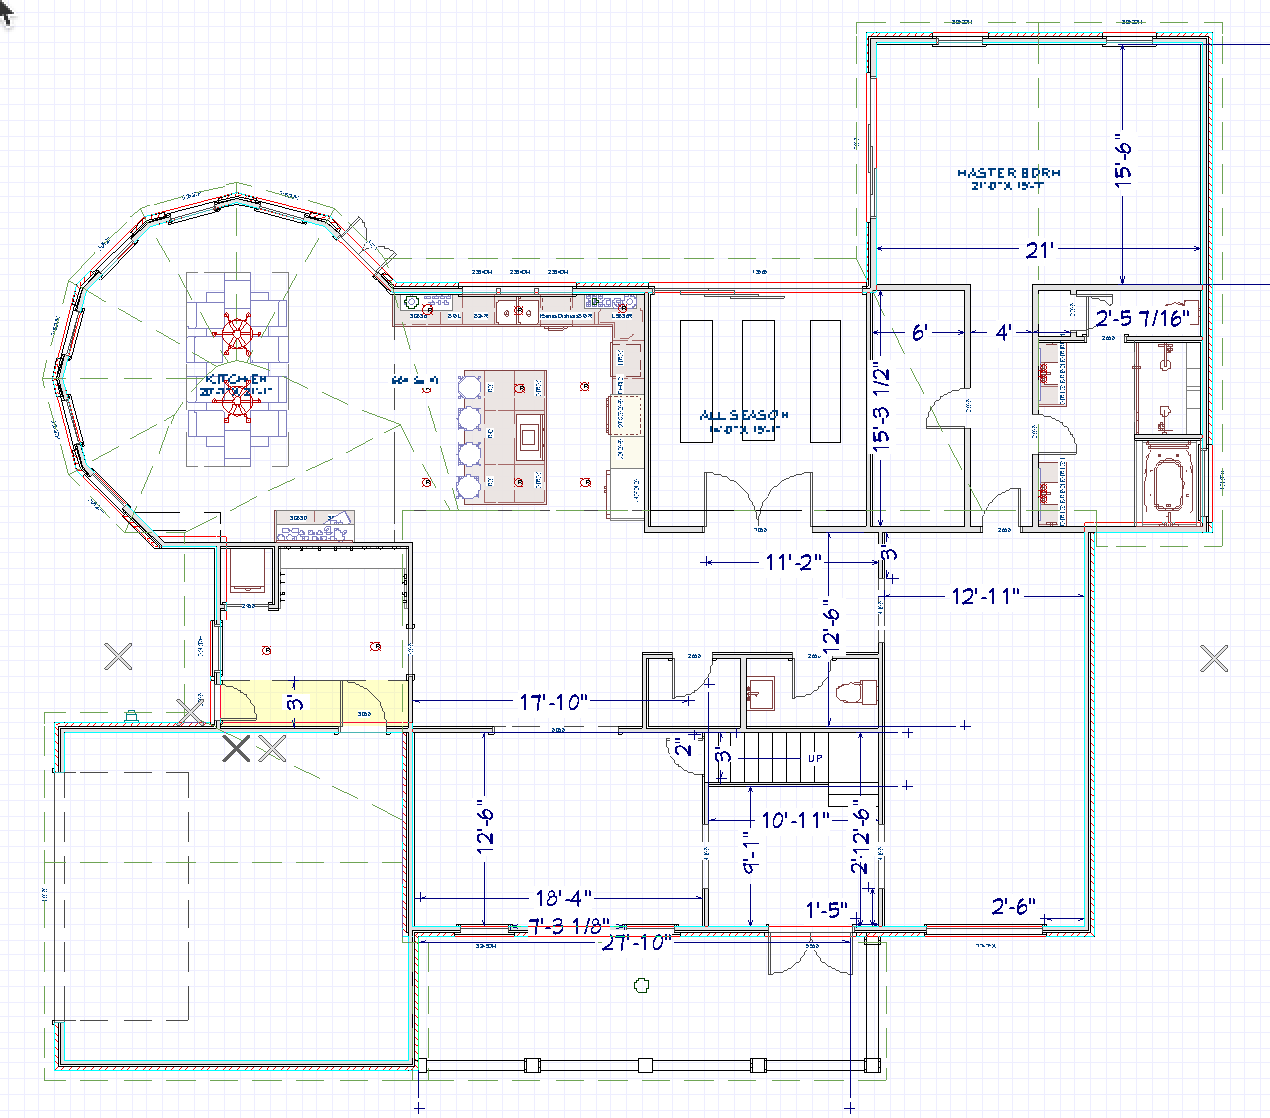 Floor Plans designed by Riverbirch Remodeling of Raleigh NC